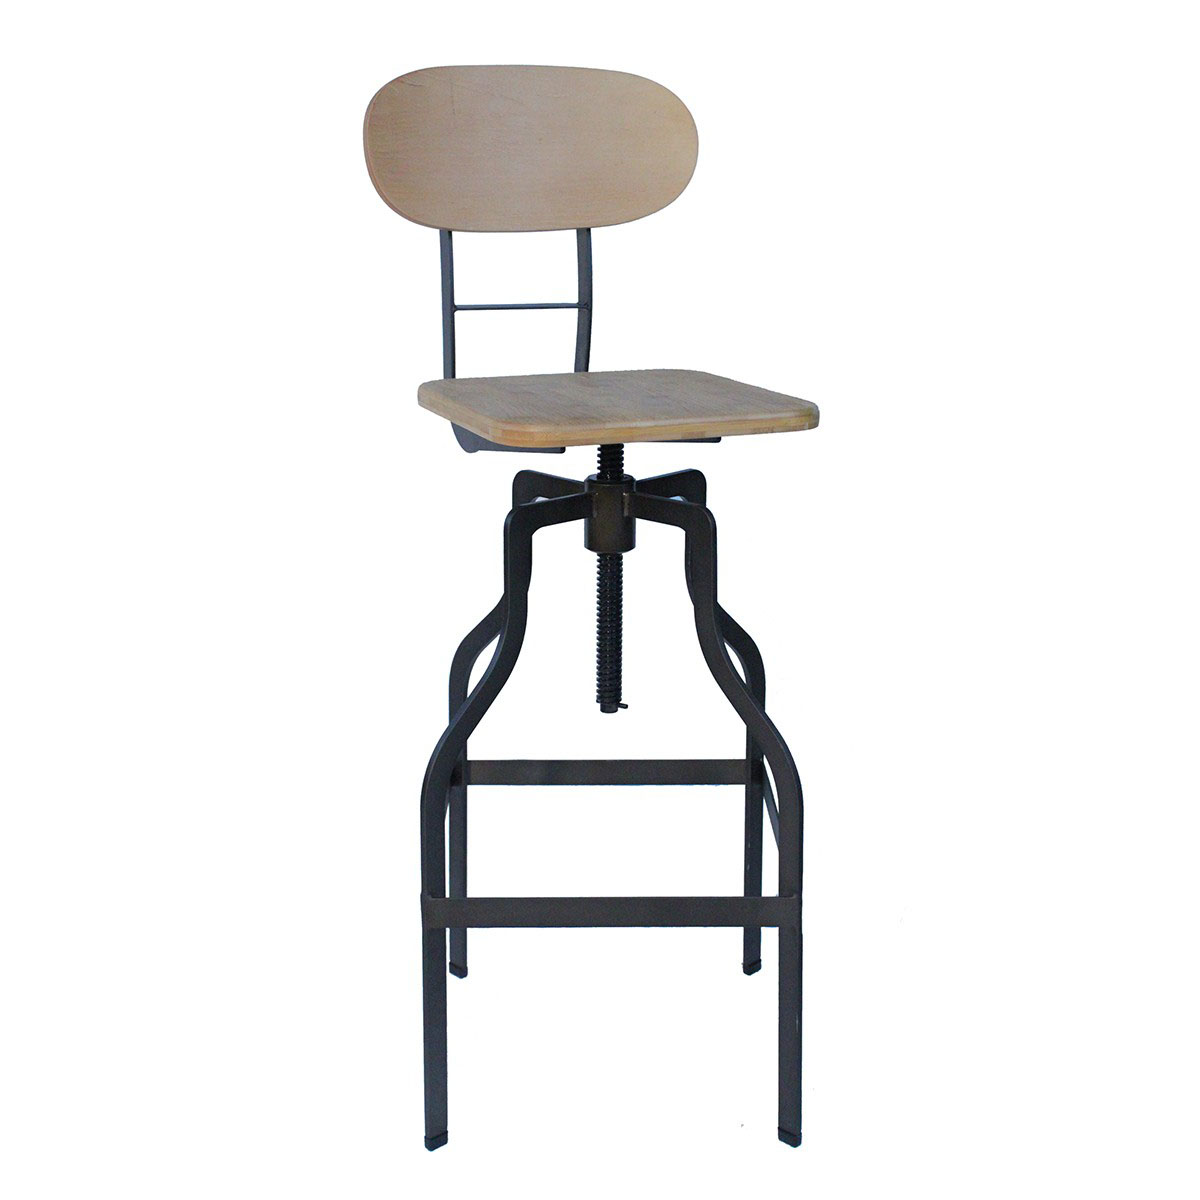 Bolzano Vintage Bar Stool - Natural